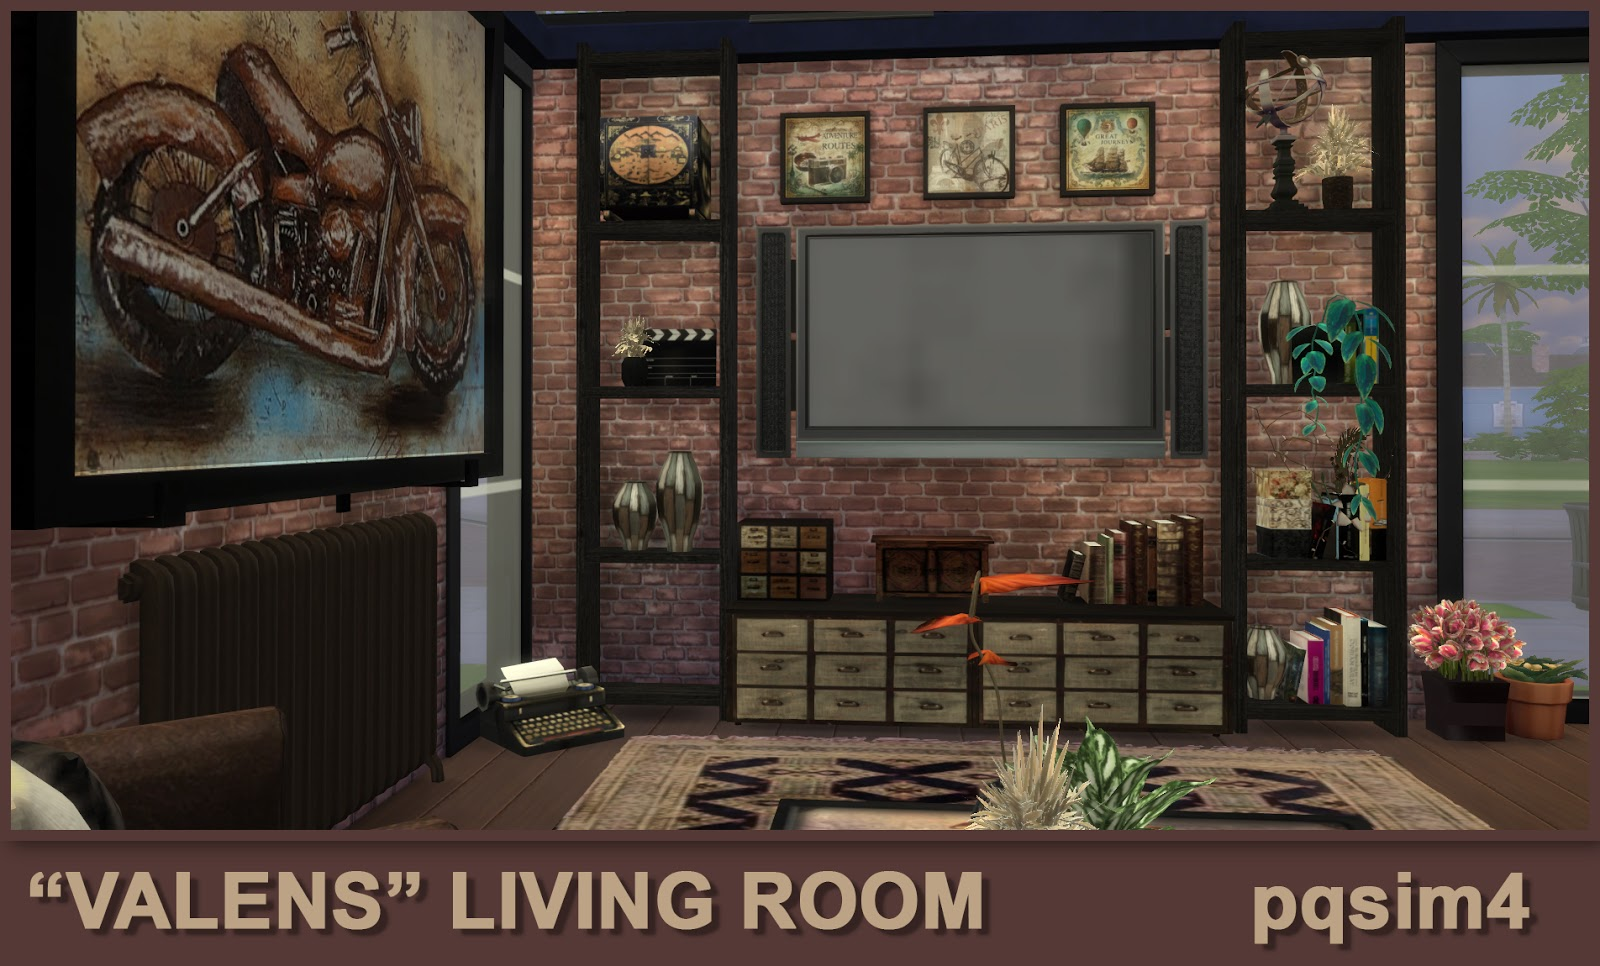 Valens living room sims 4 custom content for Living room sims 4